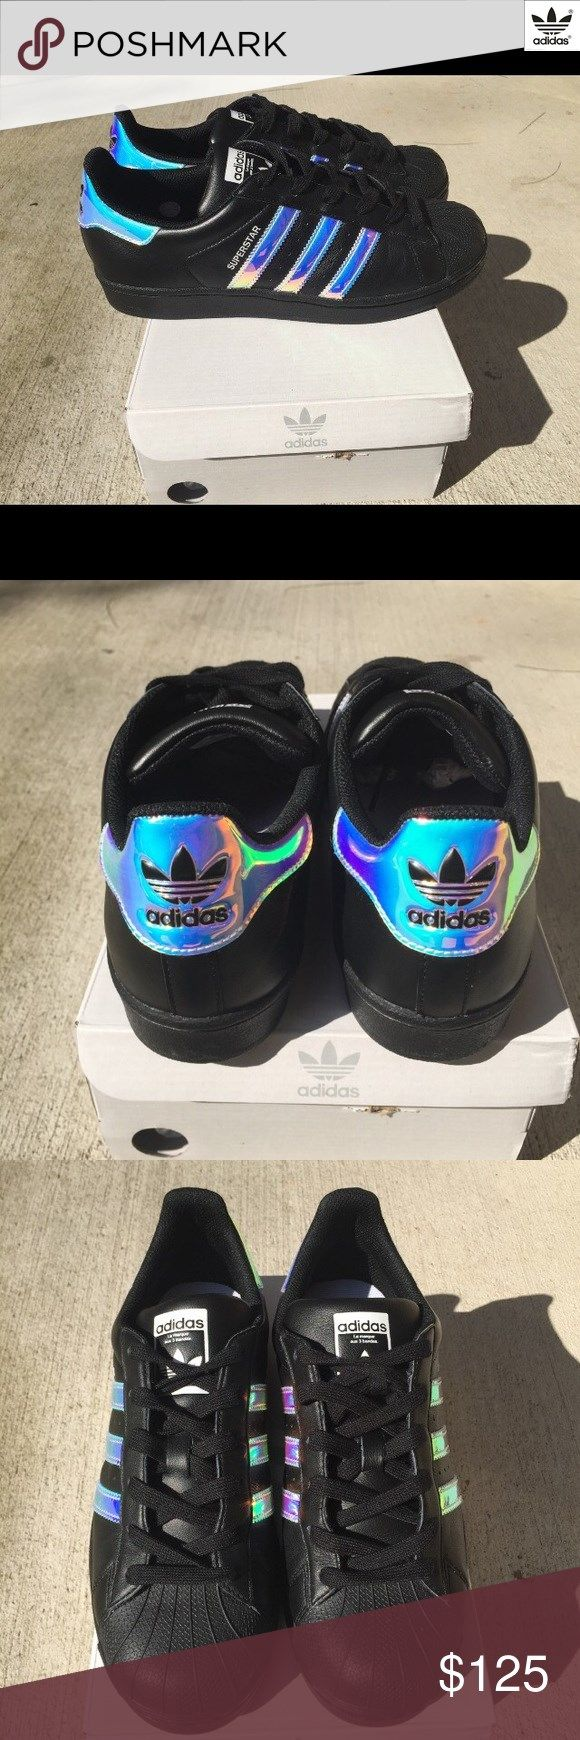 buy popular 6ecba a69e4 Holographic adidas Women size 7 ▫️Adidas Womens Superstar Size 7 ▫️Custom  Made Black leather Holographic style ▫️Brand New ▫️Comes with original box  ...